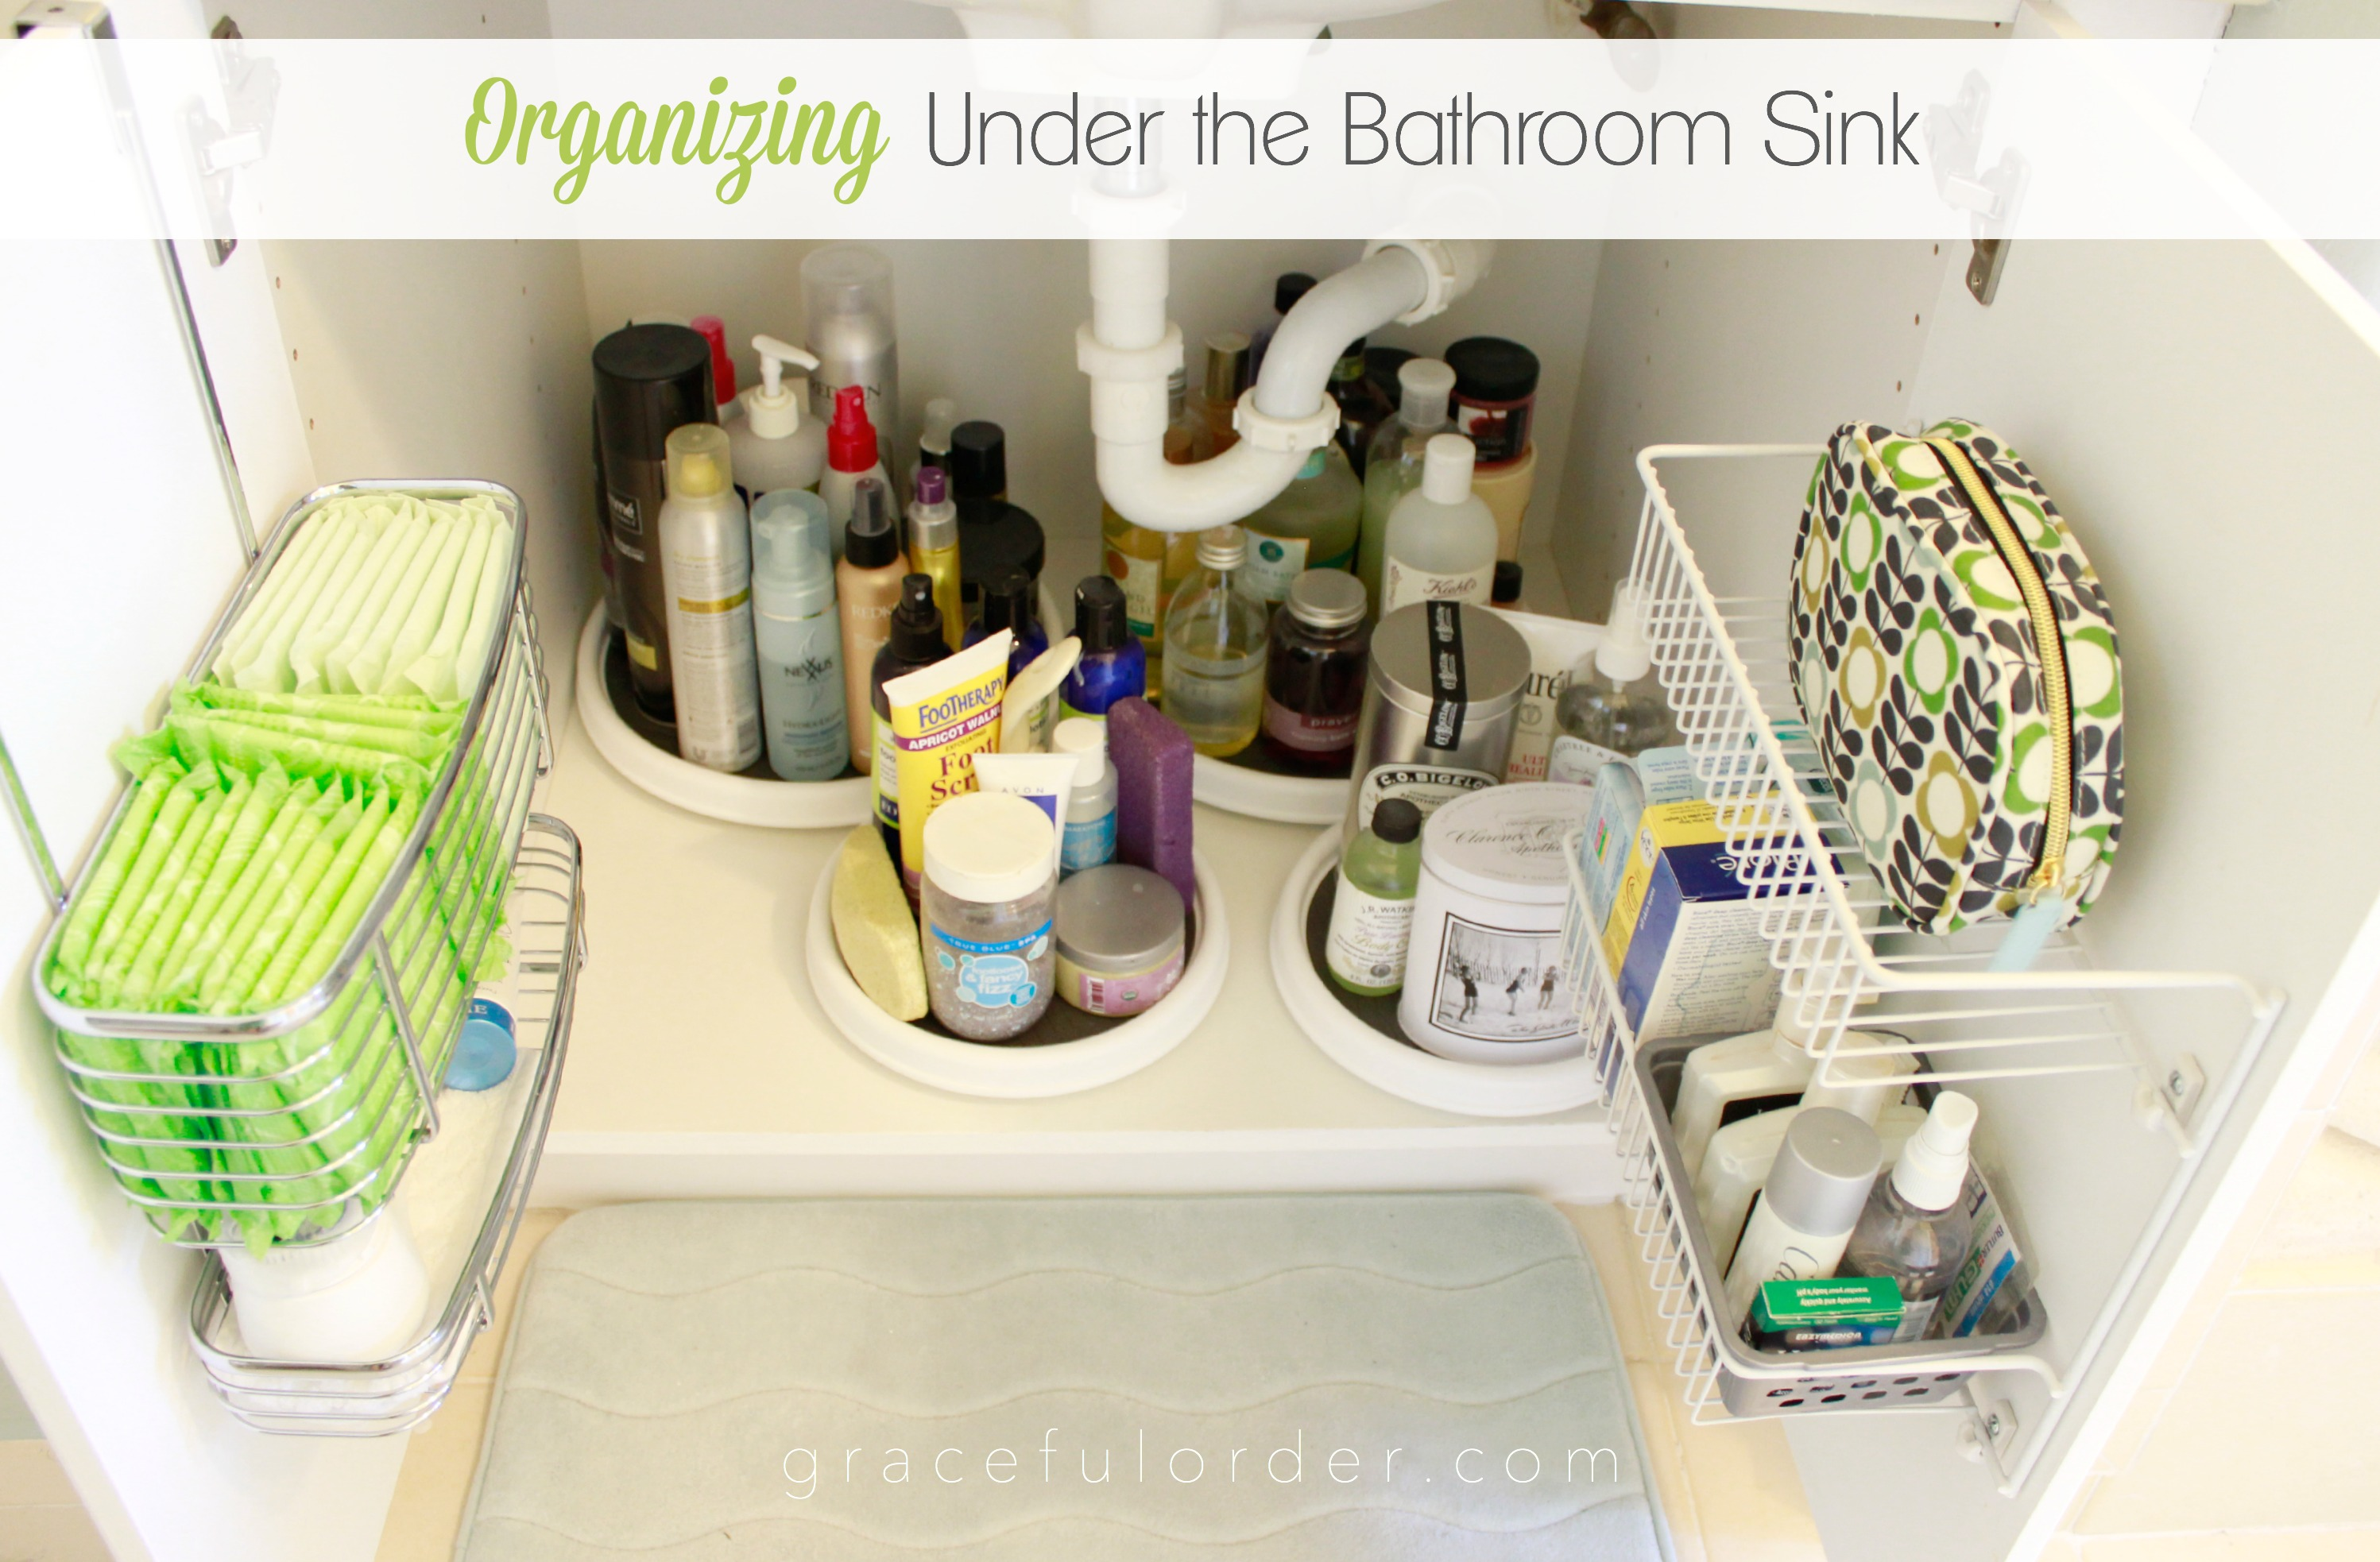 bathroom sink archives graceful order - Bathroom Organizers Under Sink